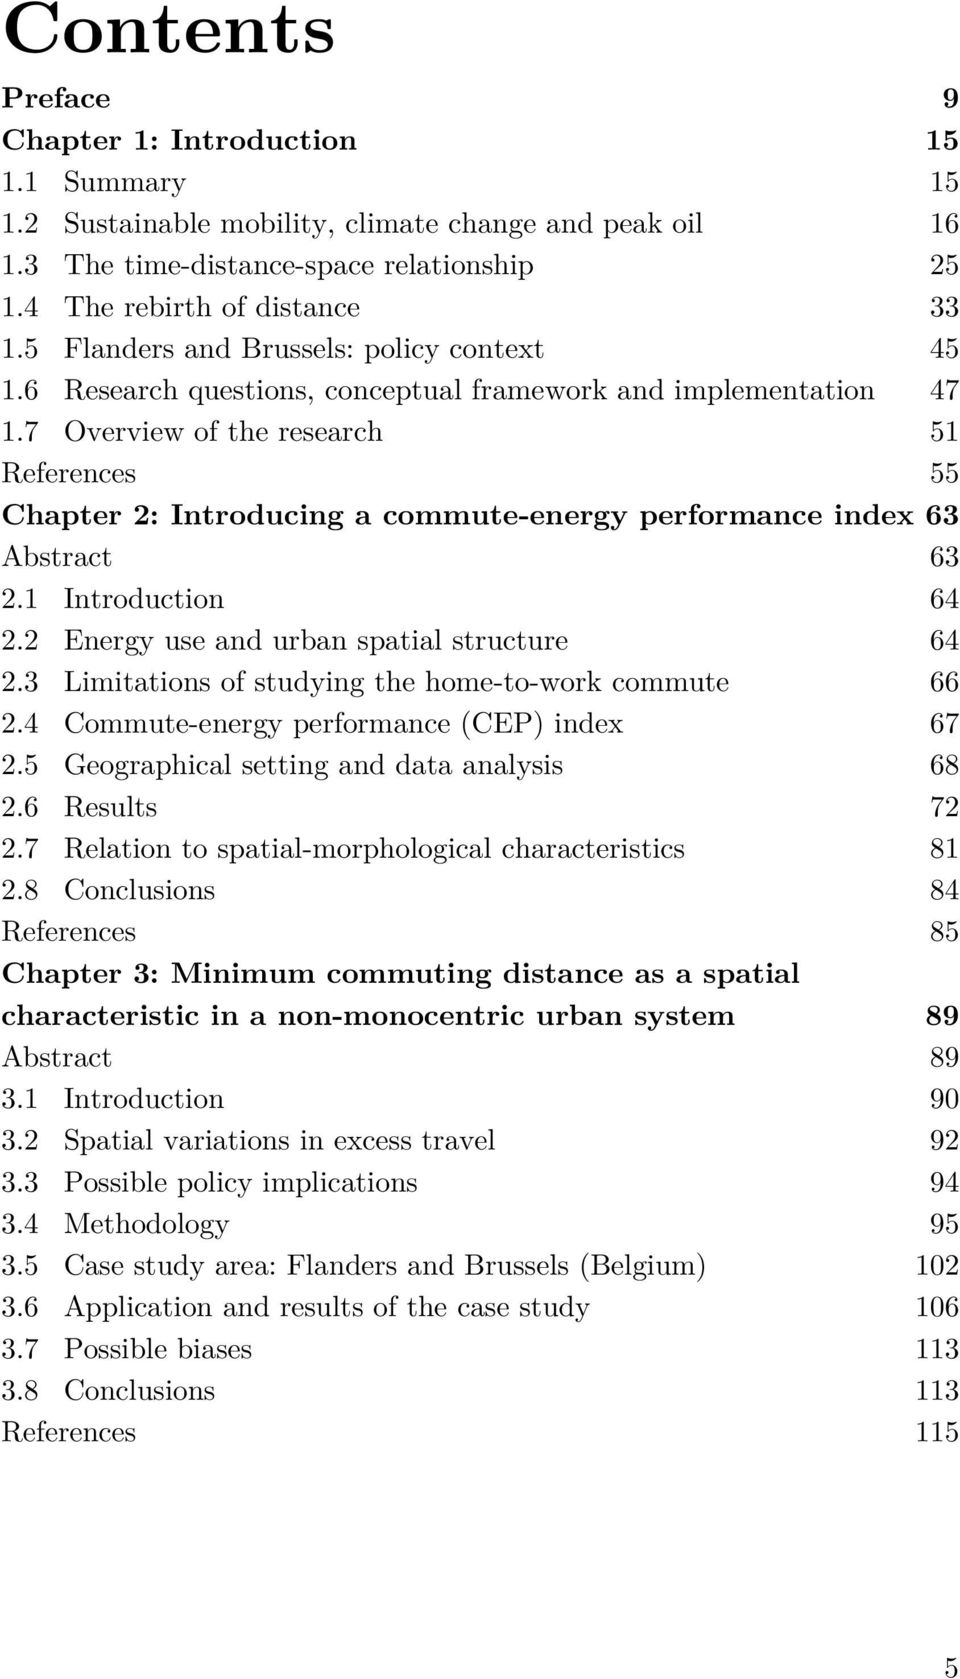 7 Overview of the research 51 References 55 Chapter 2: Introducing a commute-energy performance index 63 Abstract 63 2.1 Introduction 64 2.2 Energy use and urban spatial structure 64 2.